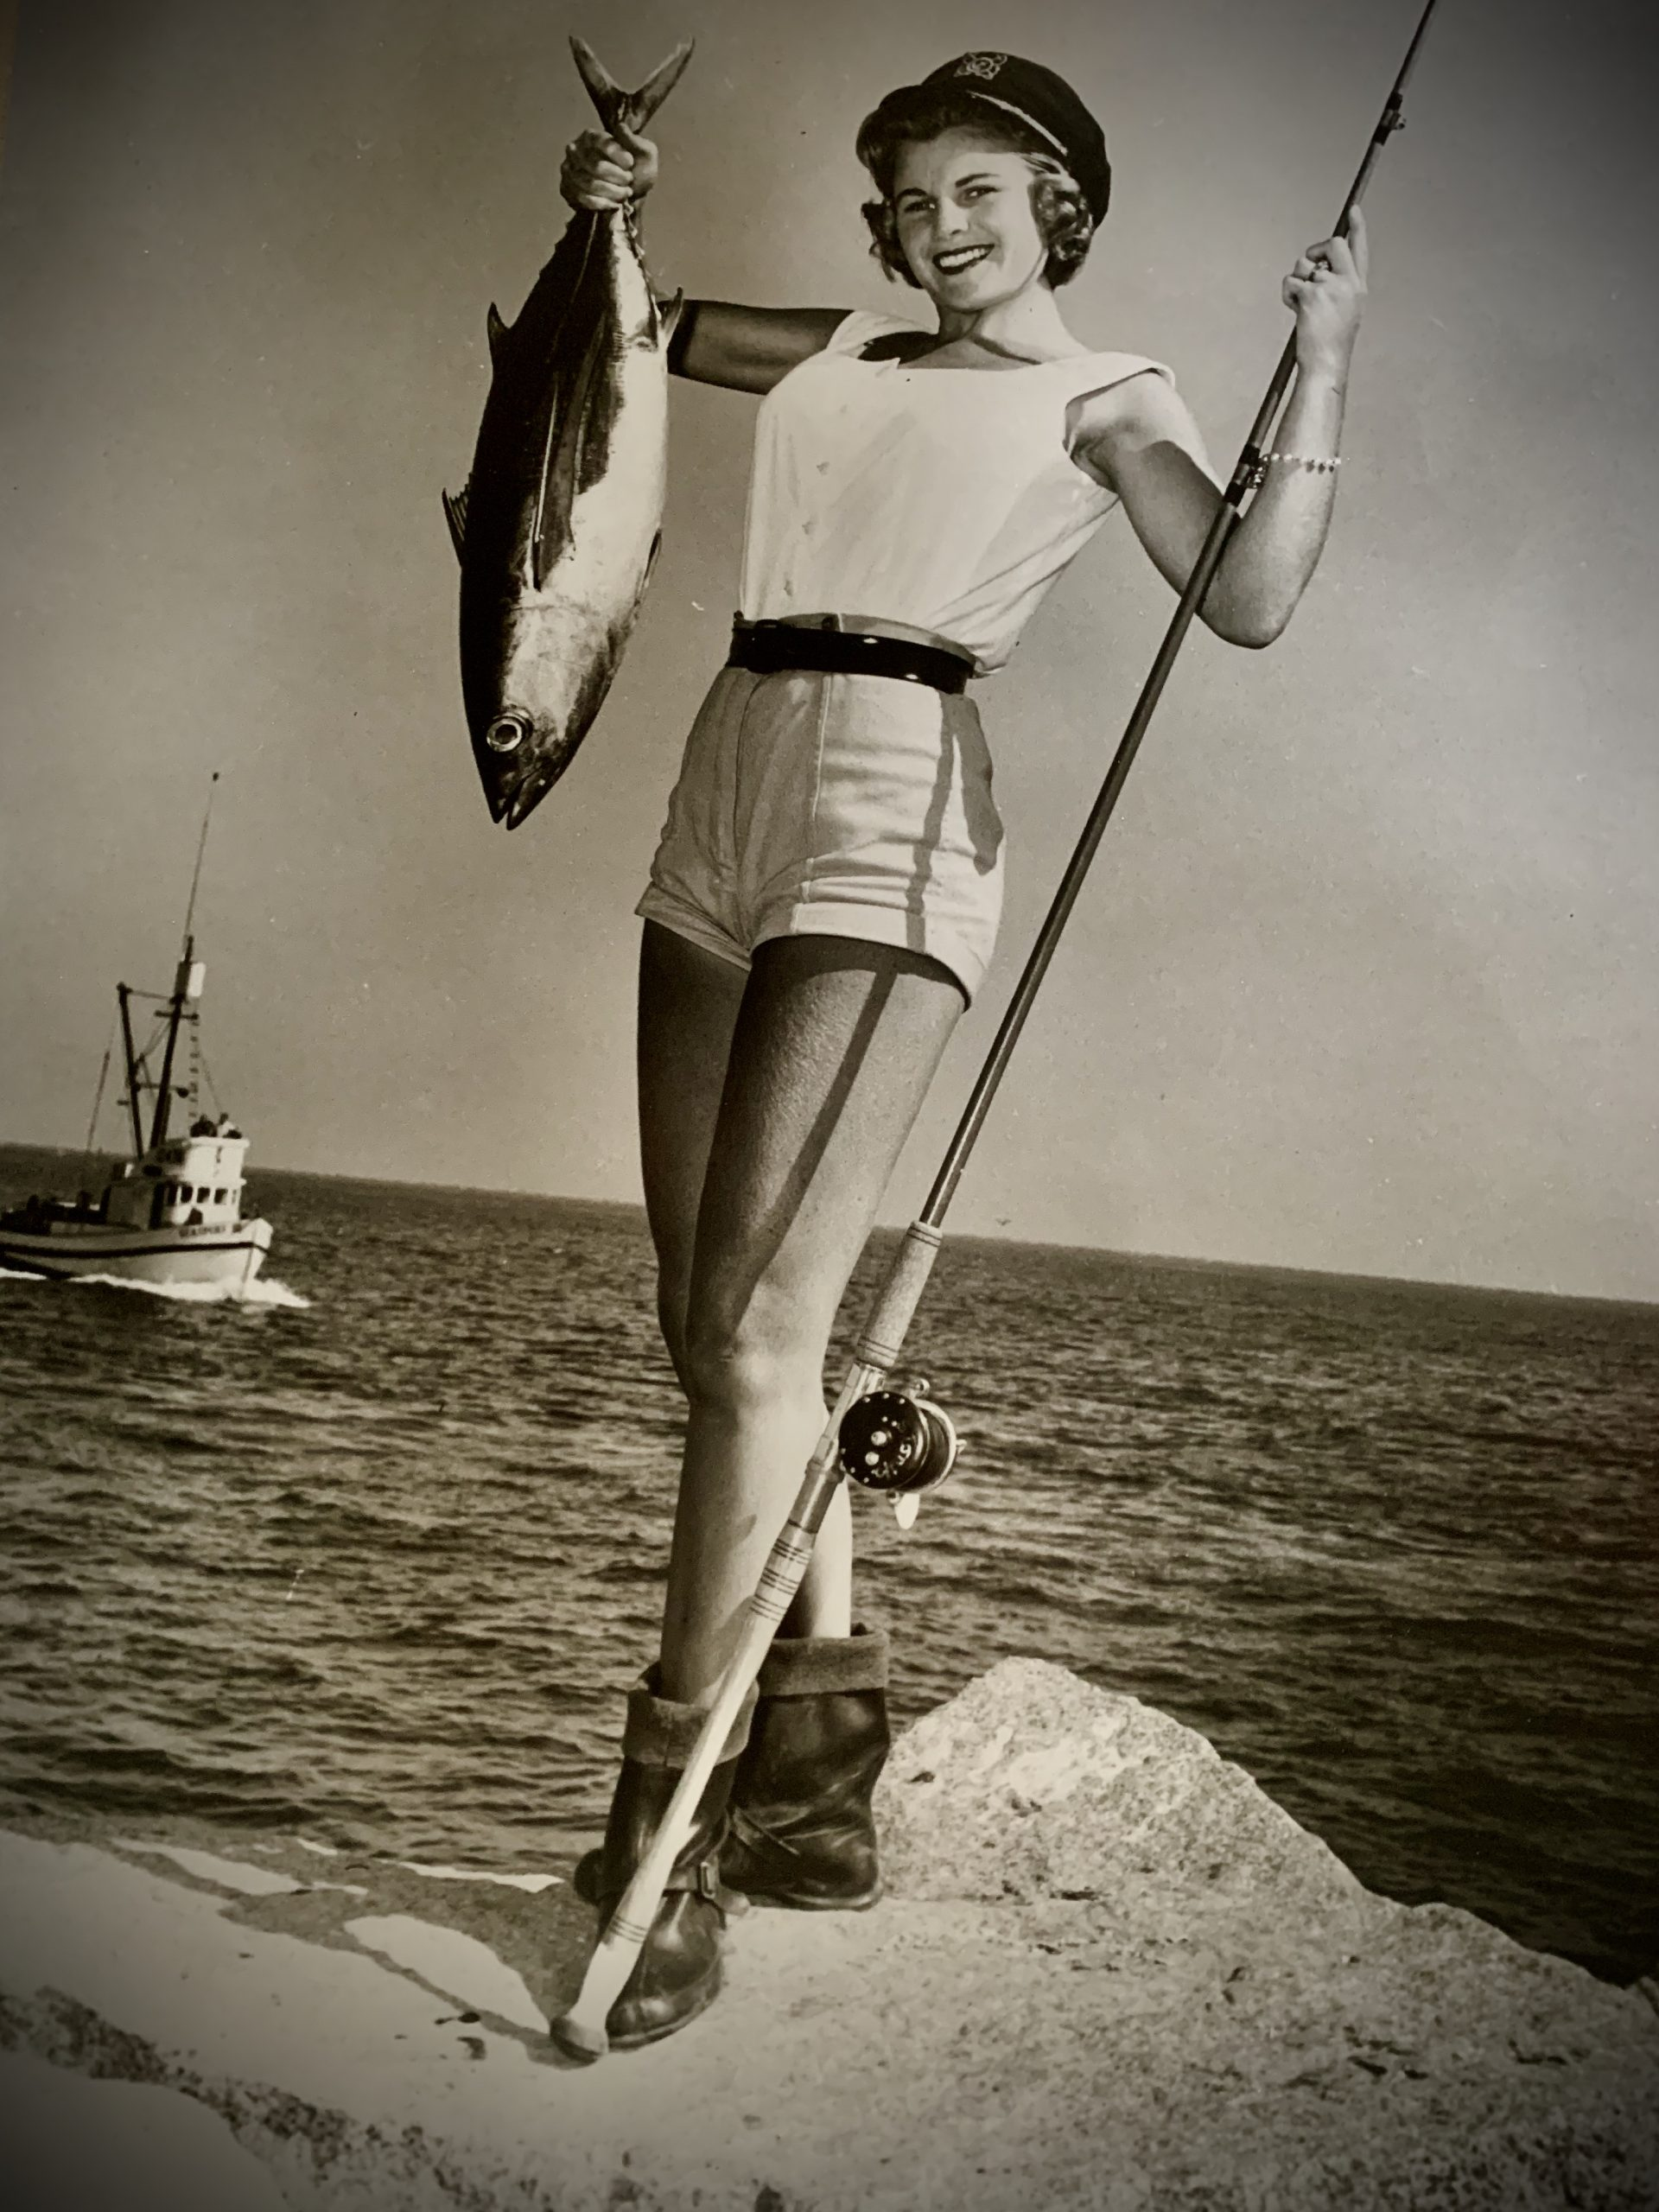 The_History_Of_Sportfishing_gal with fish